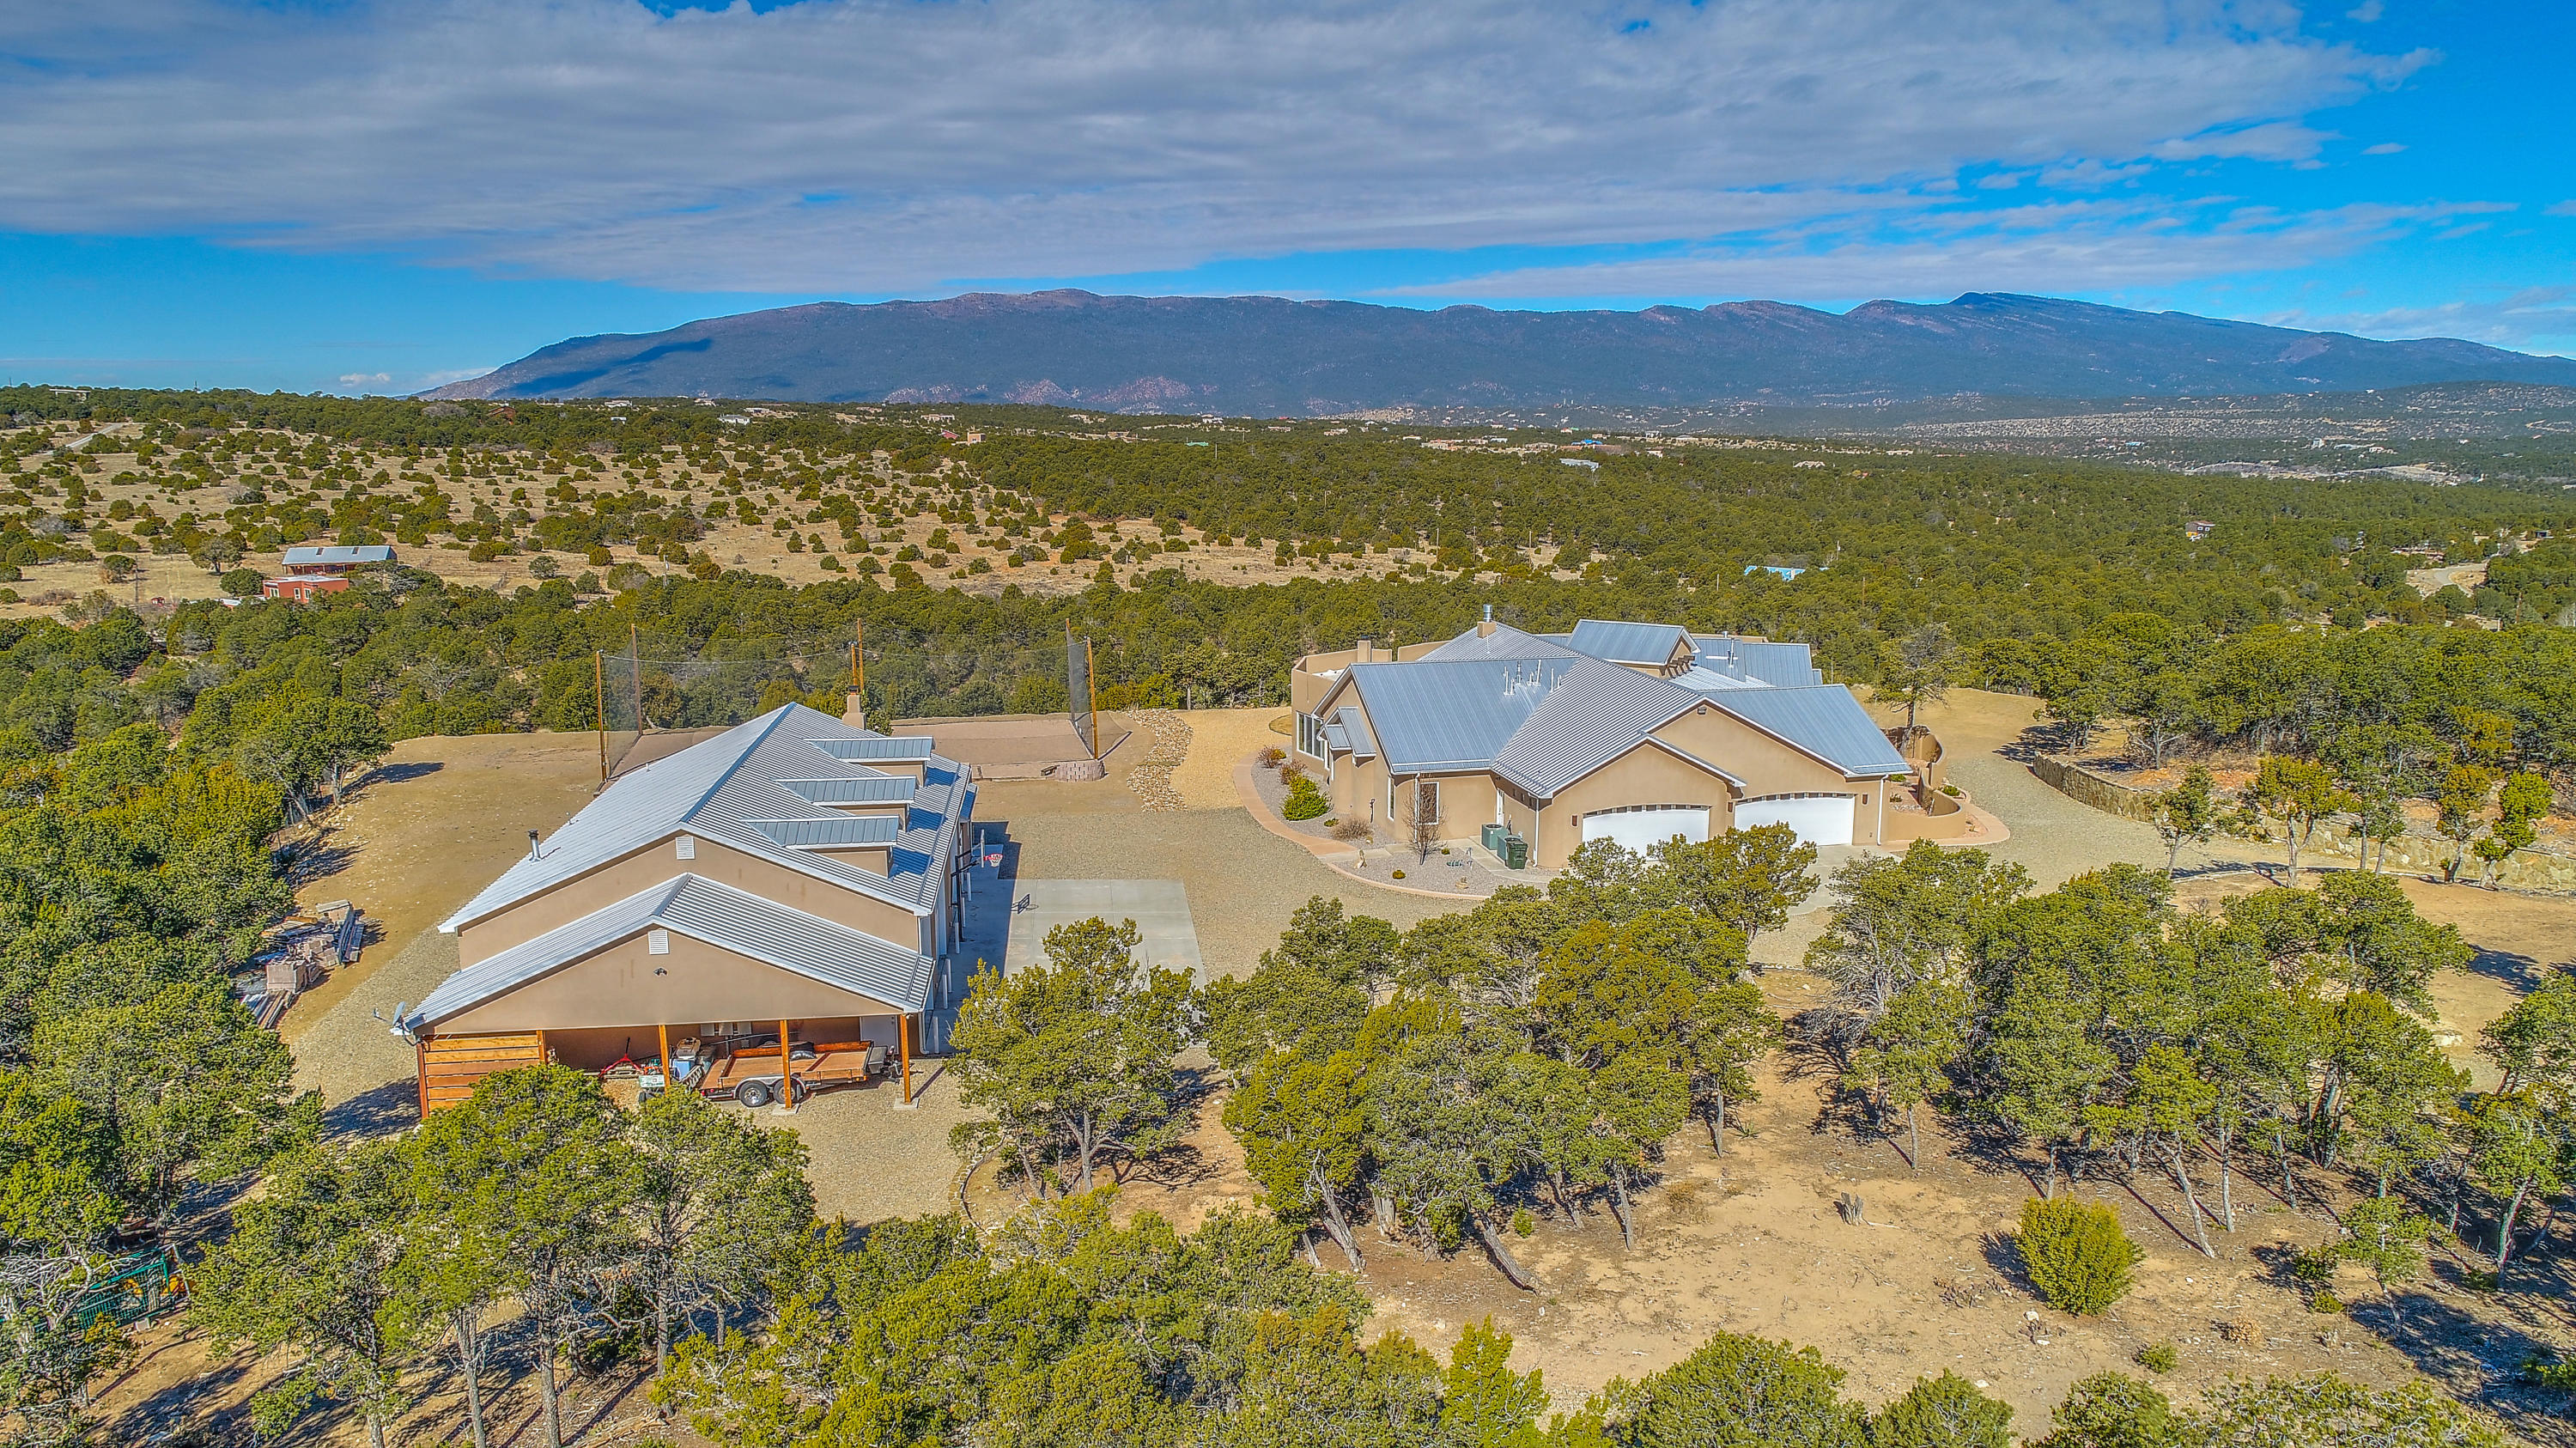 Spectacular views surround this exceptional custom home on 7 plus private acres just 25 minutes from ABQ international airport off of I-40. Main home with four bedrooms, three bathrooms, home office and wet-bar. Full guest house and RV garage. Thermador appliances in a chef's kitchen with double ovens, 6-top gas stove, warming drawer and built-in refrigerator. Walk-in pantry and extensive cabinetry provide plenty of storage. Eat-in kitchen and breakfast bar as well as separate dining room for formal dinners. Bring the party outside to the extended patio, fire-pit, and volleyball court.Ambiance exudes throughout this high-end home including on-demand hot water, gas fireplaces, radiant floor heating, refrigerated air conditioning and central vacuum.